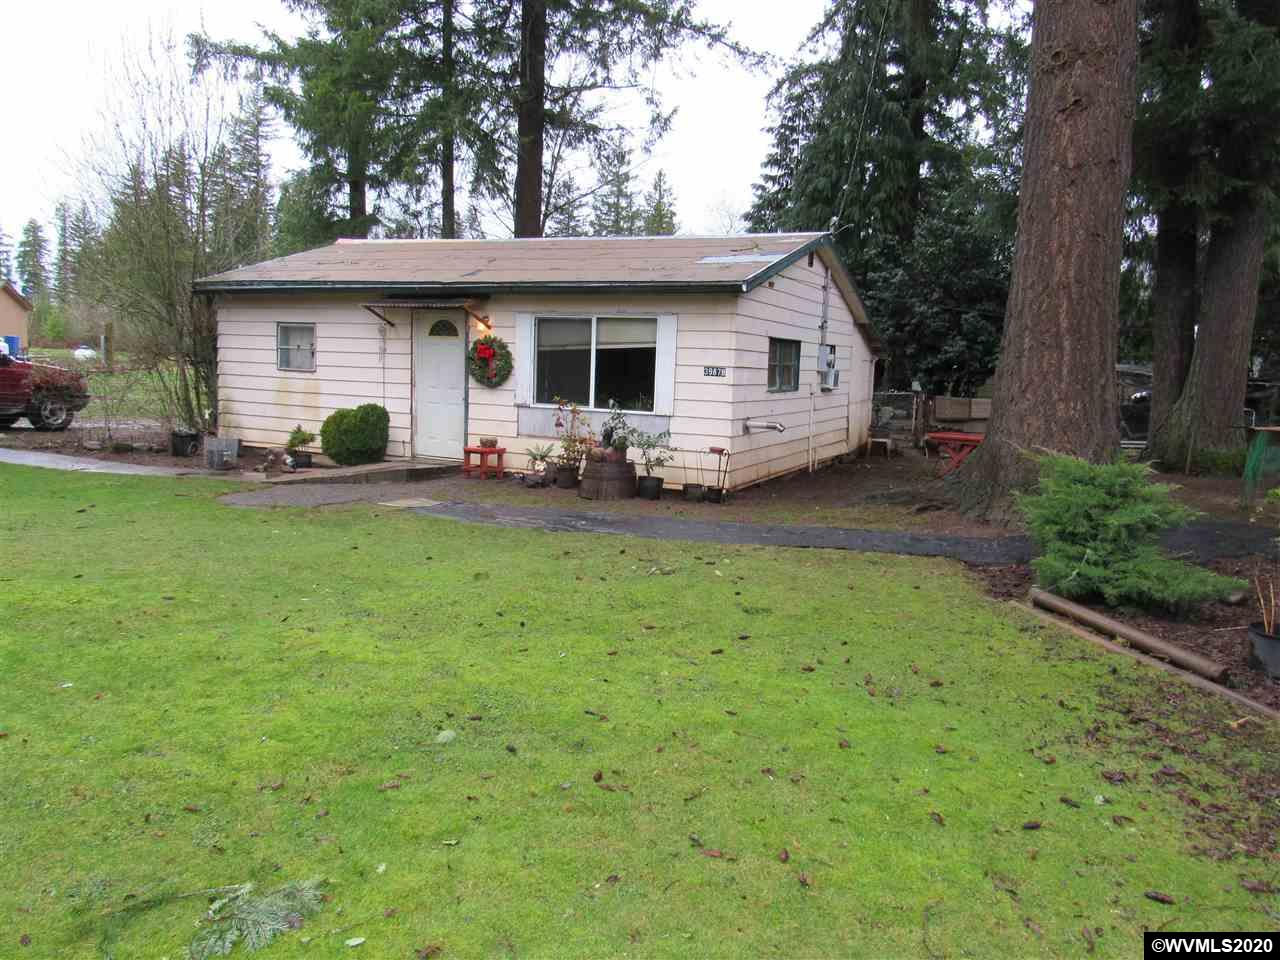 39878 Rock Creek Rd, Gates, Oregon 97346, 2 Bedrooms Bedrooms, ,1 BathroomBathrooms,Residence,For sale,39878 Rock Creek Rd,759982